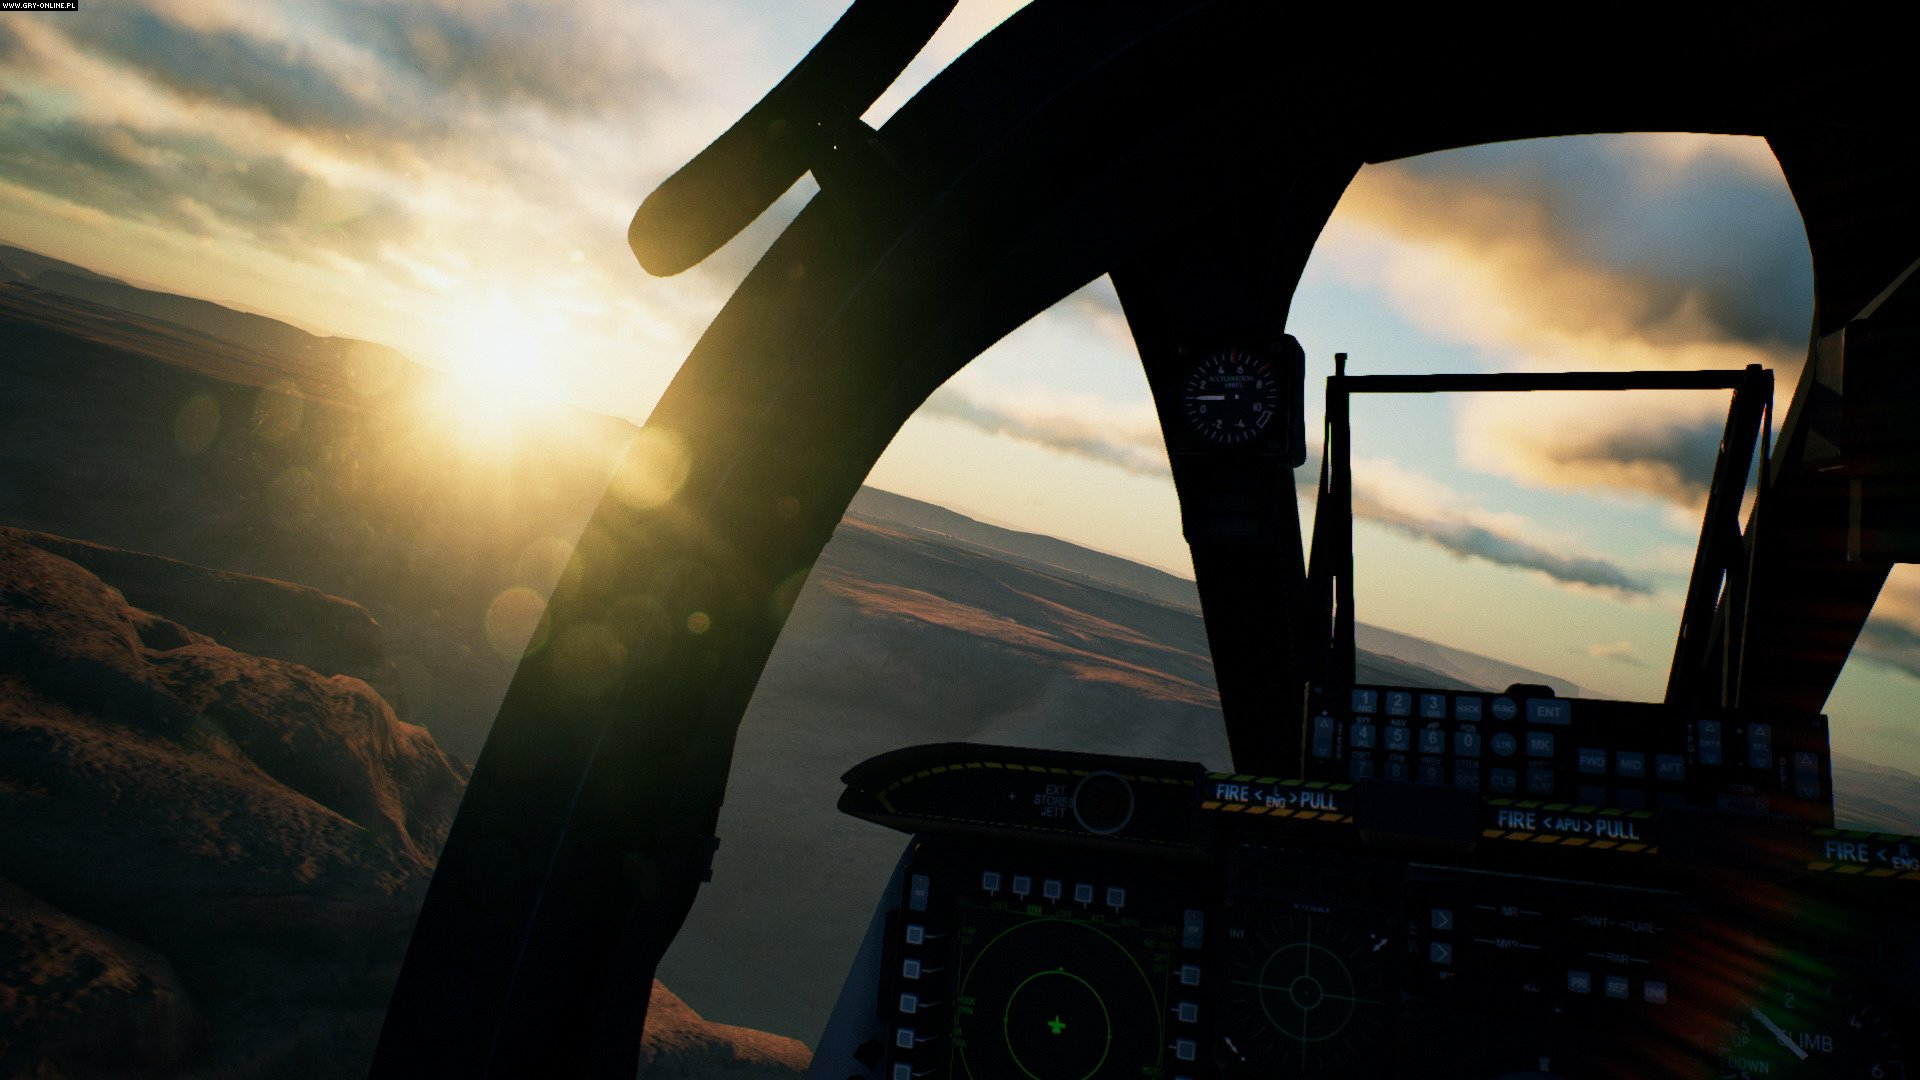 Ace Combat 7: Skies Unknown PC, PS4, XONE Games Image 99/249, Project Aces, Bandai Namco Entertainment